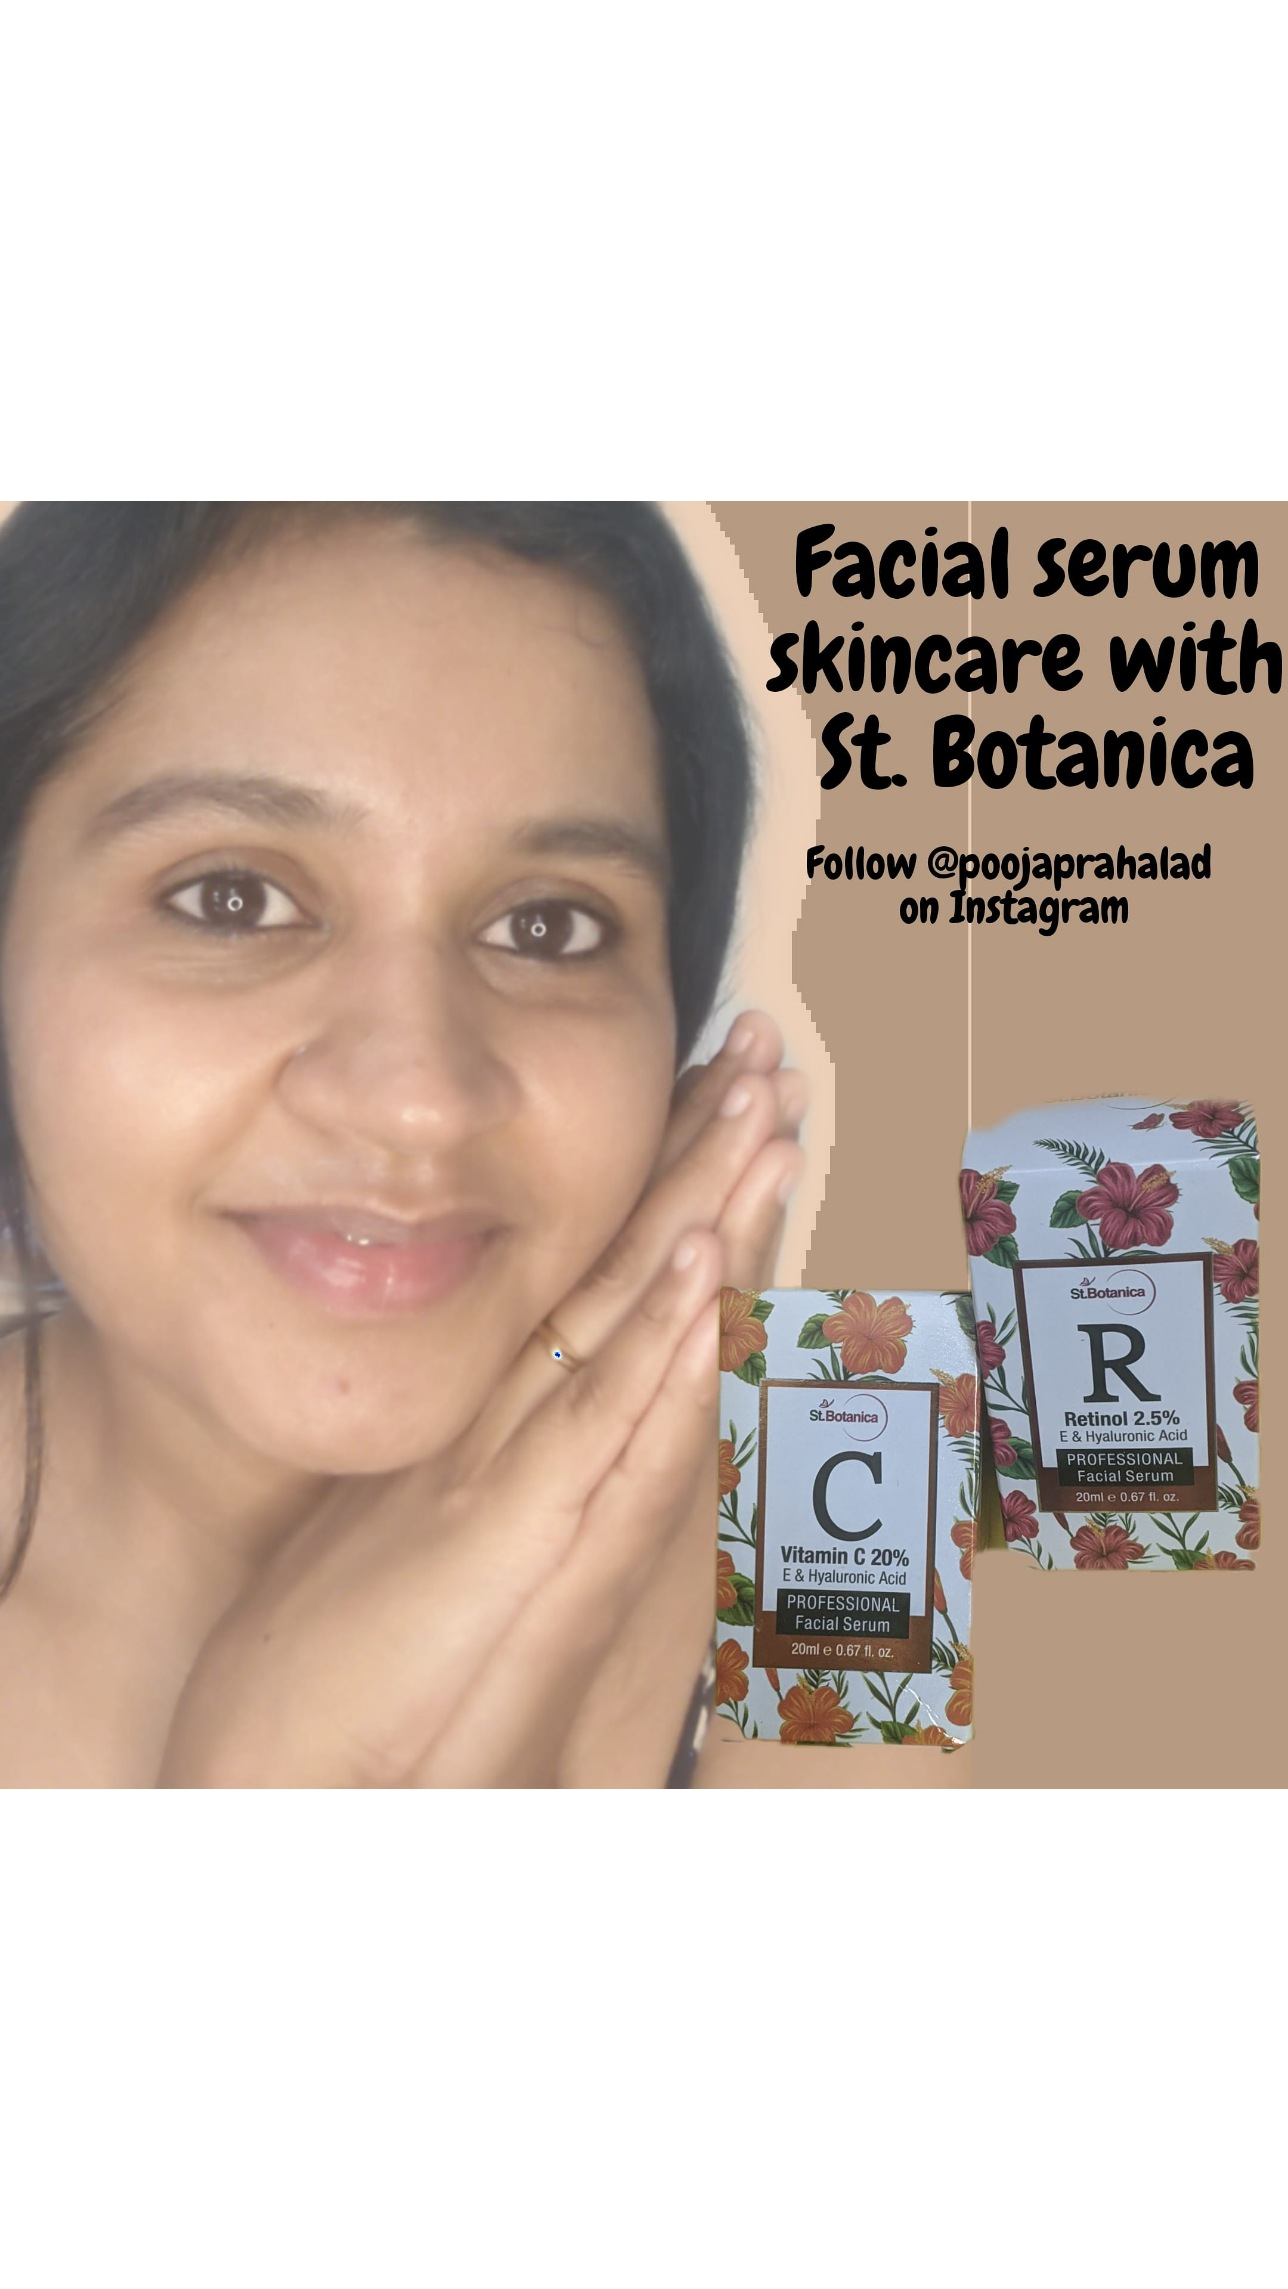 StBotanica Vitamin C 20%, E & Hyaluronic Acid 24k Gold Night Face Serum-Best Vitamin C apnd hyaluronic acid serum for my daily routine.-By pooja_prahlad